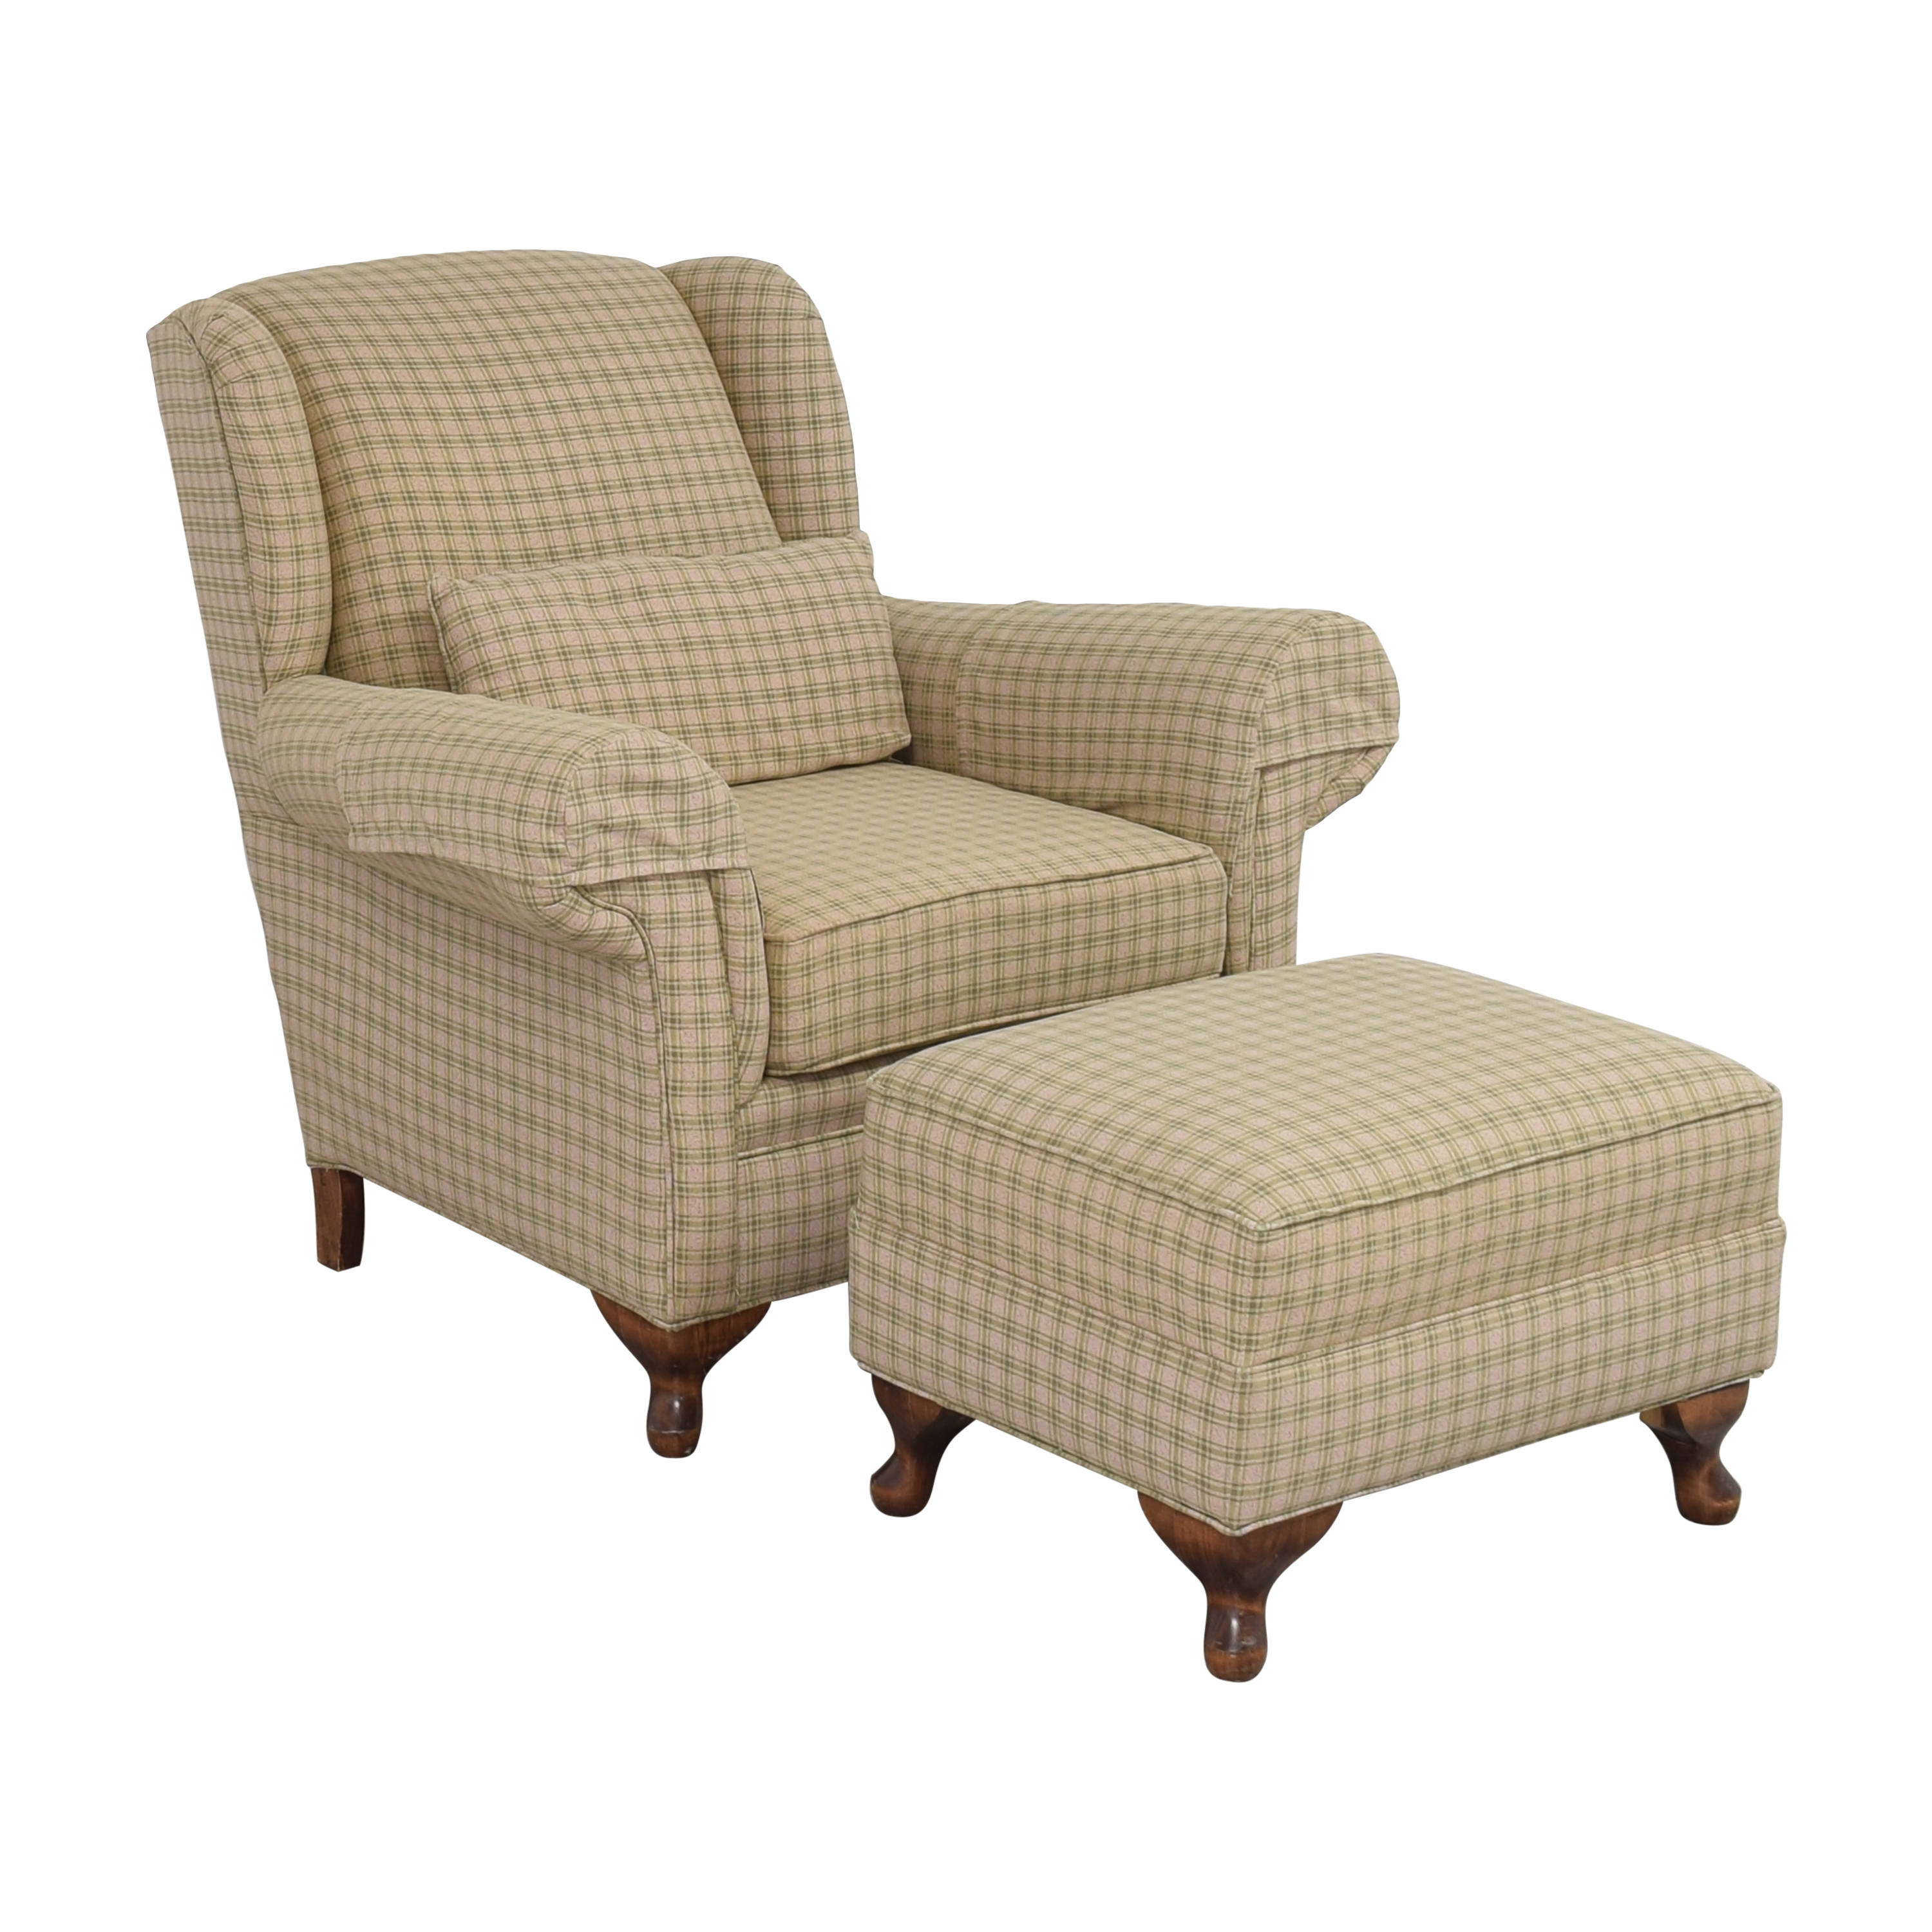 Roll Arm Chair with Ottoman